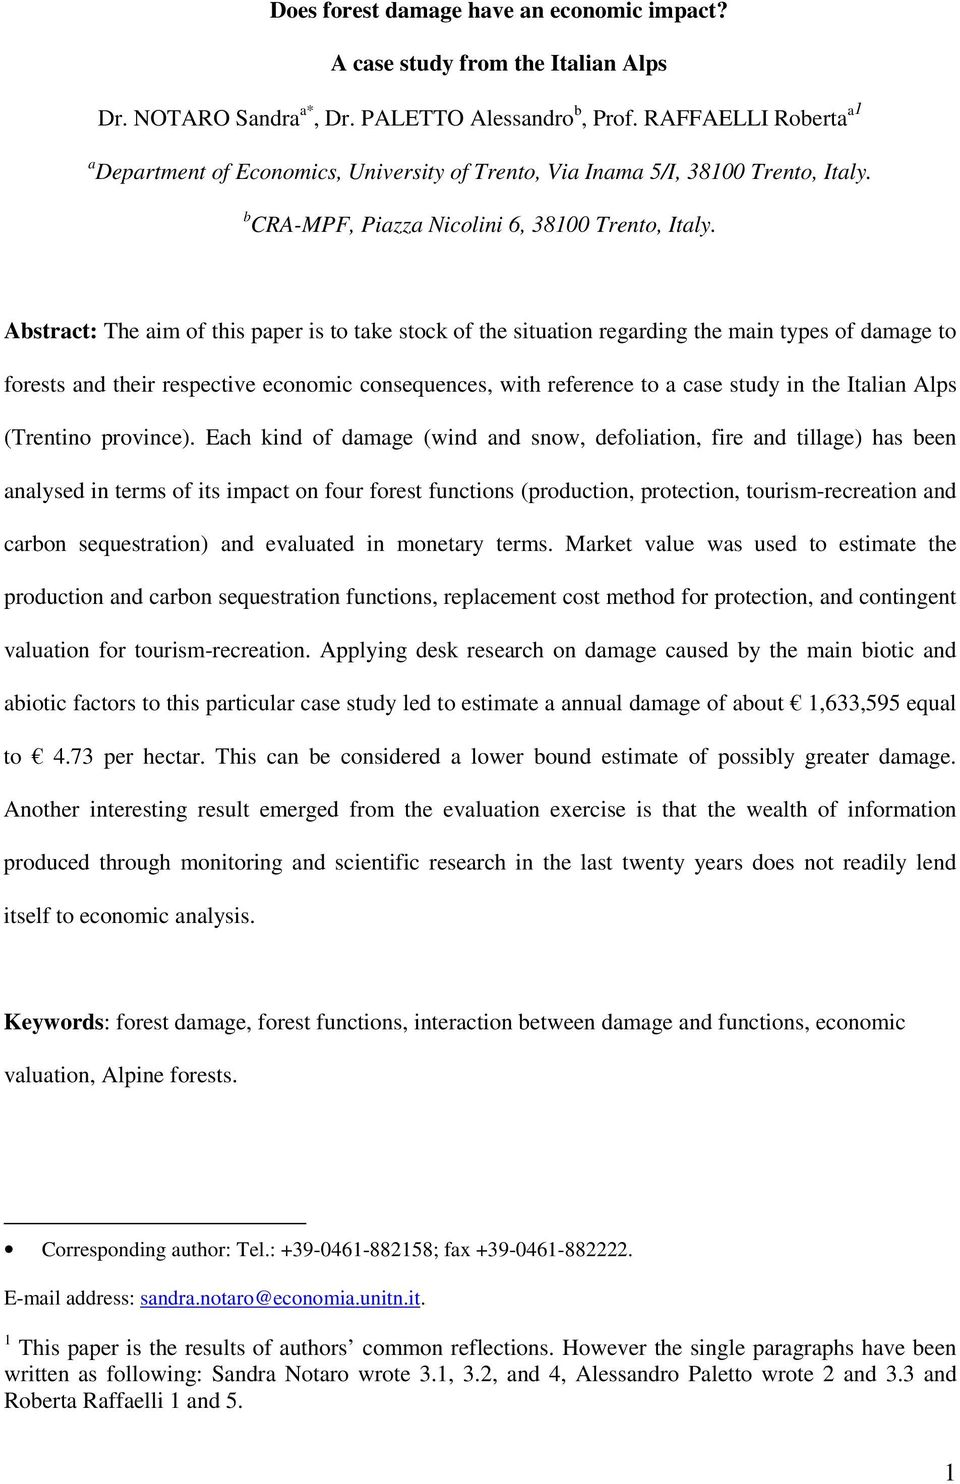 Abstract: The aim of this paper is to take stock of the situation regarding the main types of damage to forests and their respective economic consequences, with reference to a case study in the